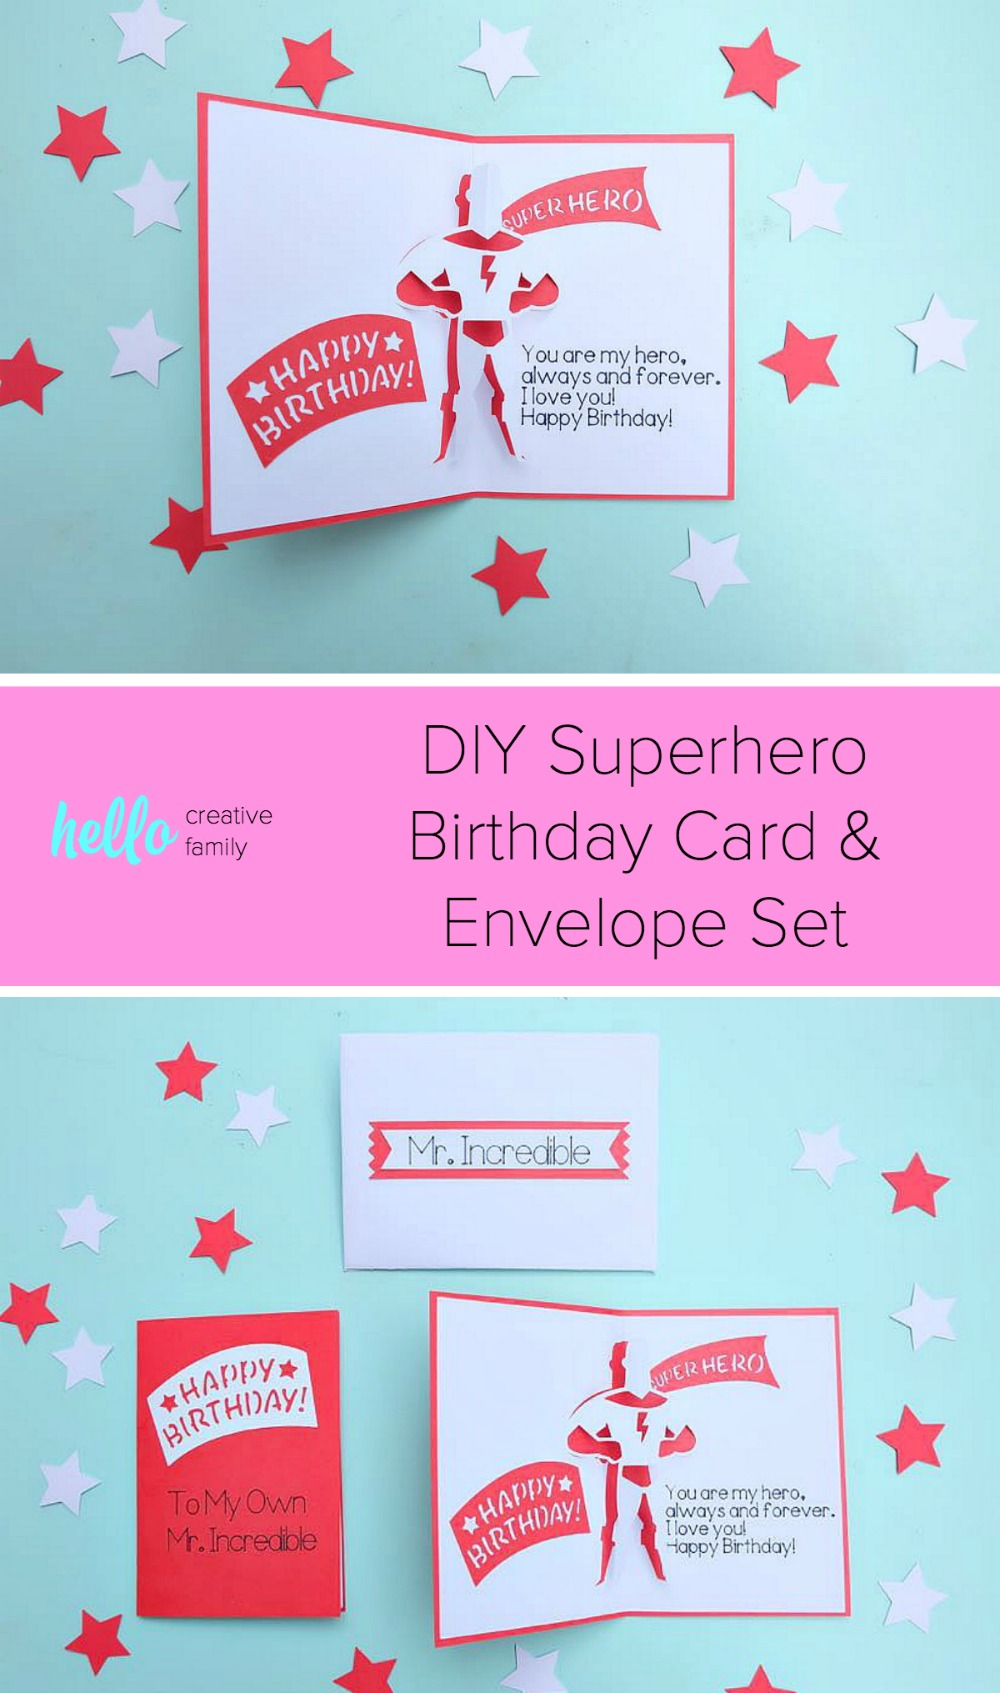 "Say ""Happy Birthday"" to your favorite superhero with this DIY Superhero Birthday Card and Envelope Set. Made using your Cricut, this project is easy enough for those new to card making but packs a big impact. The perfect handmade element for a birthday gift for fans of Marvel, The Incredibles and DC Comics. #Cricut #CricutMade #Superhero #Birthday"